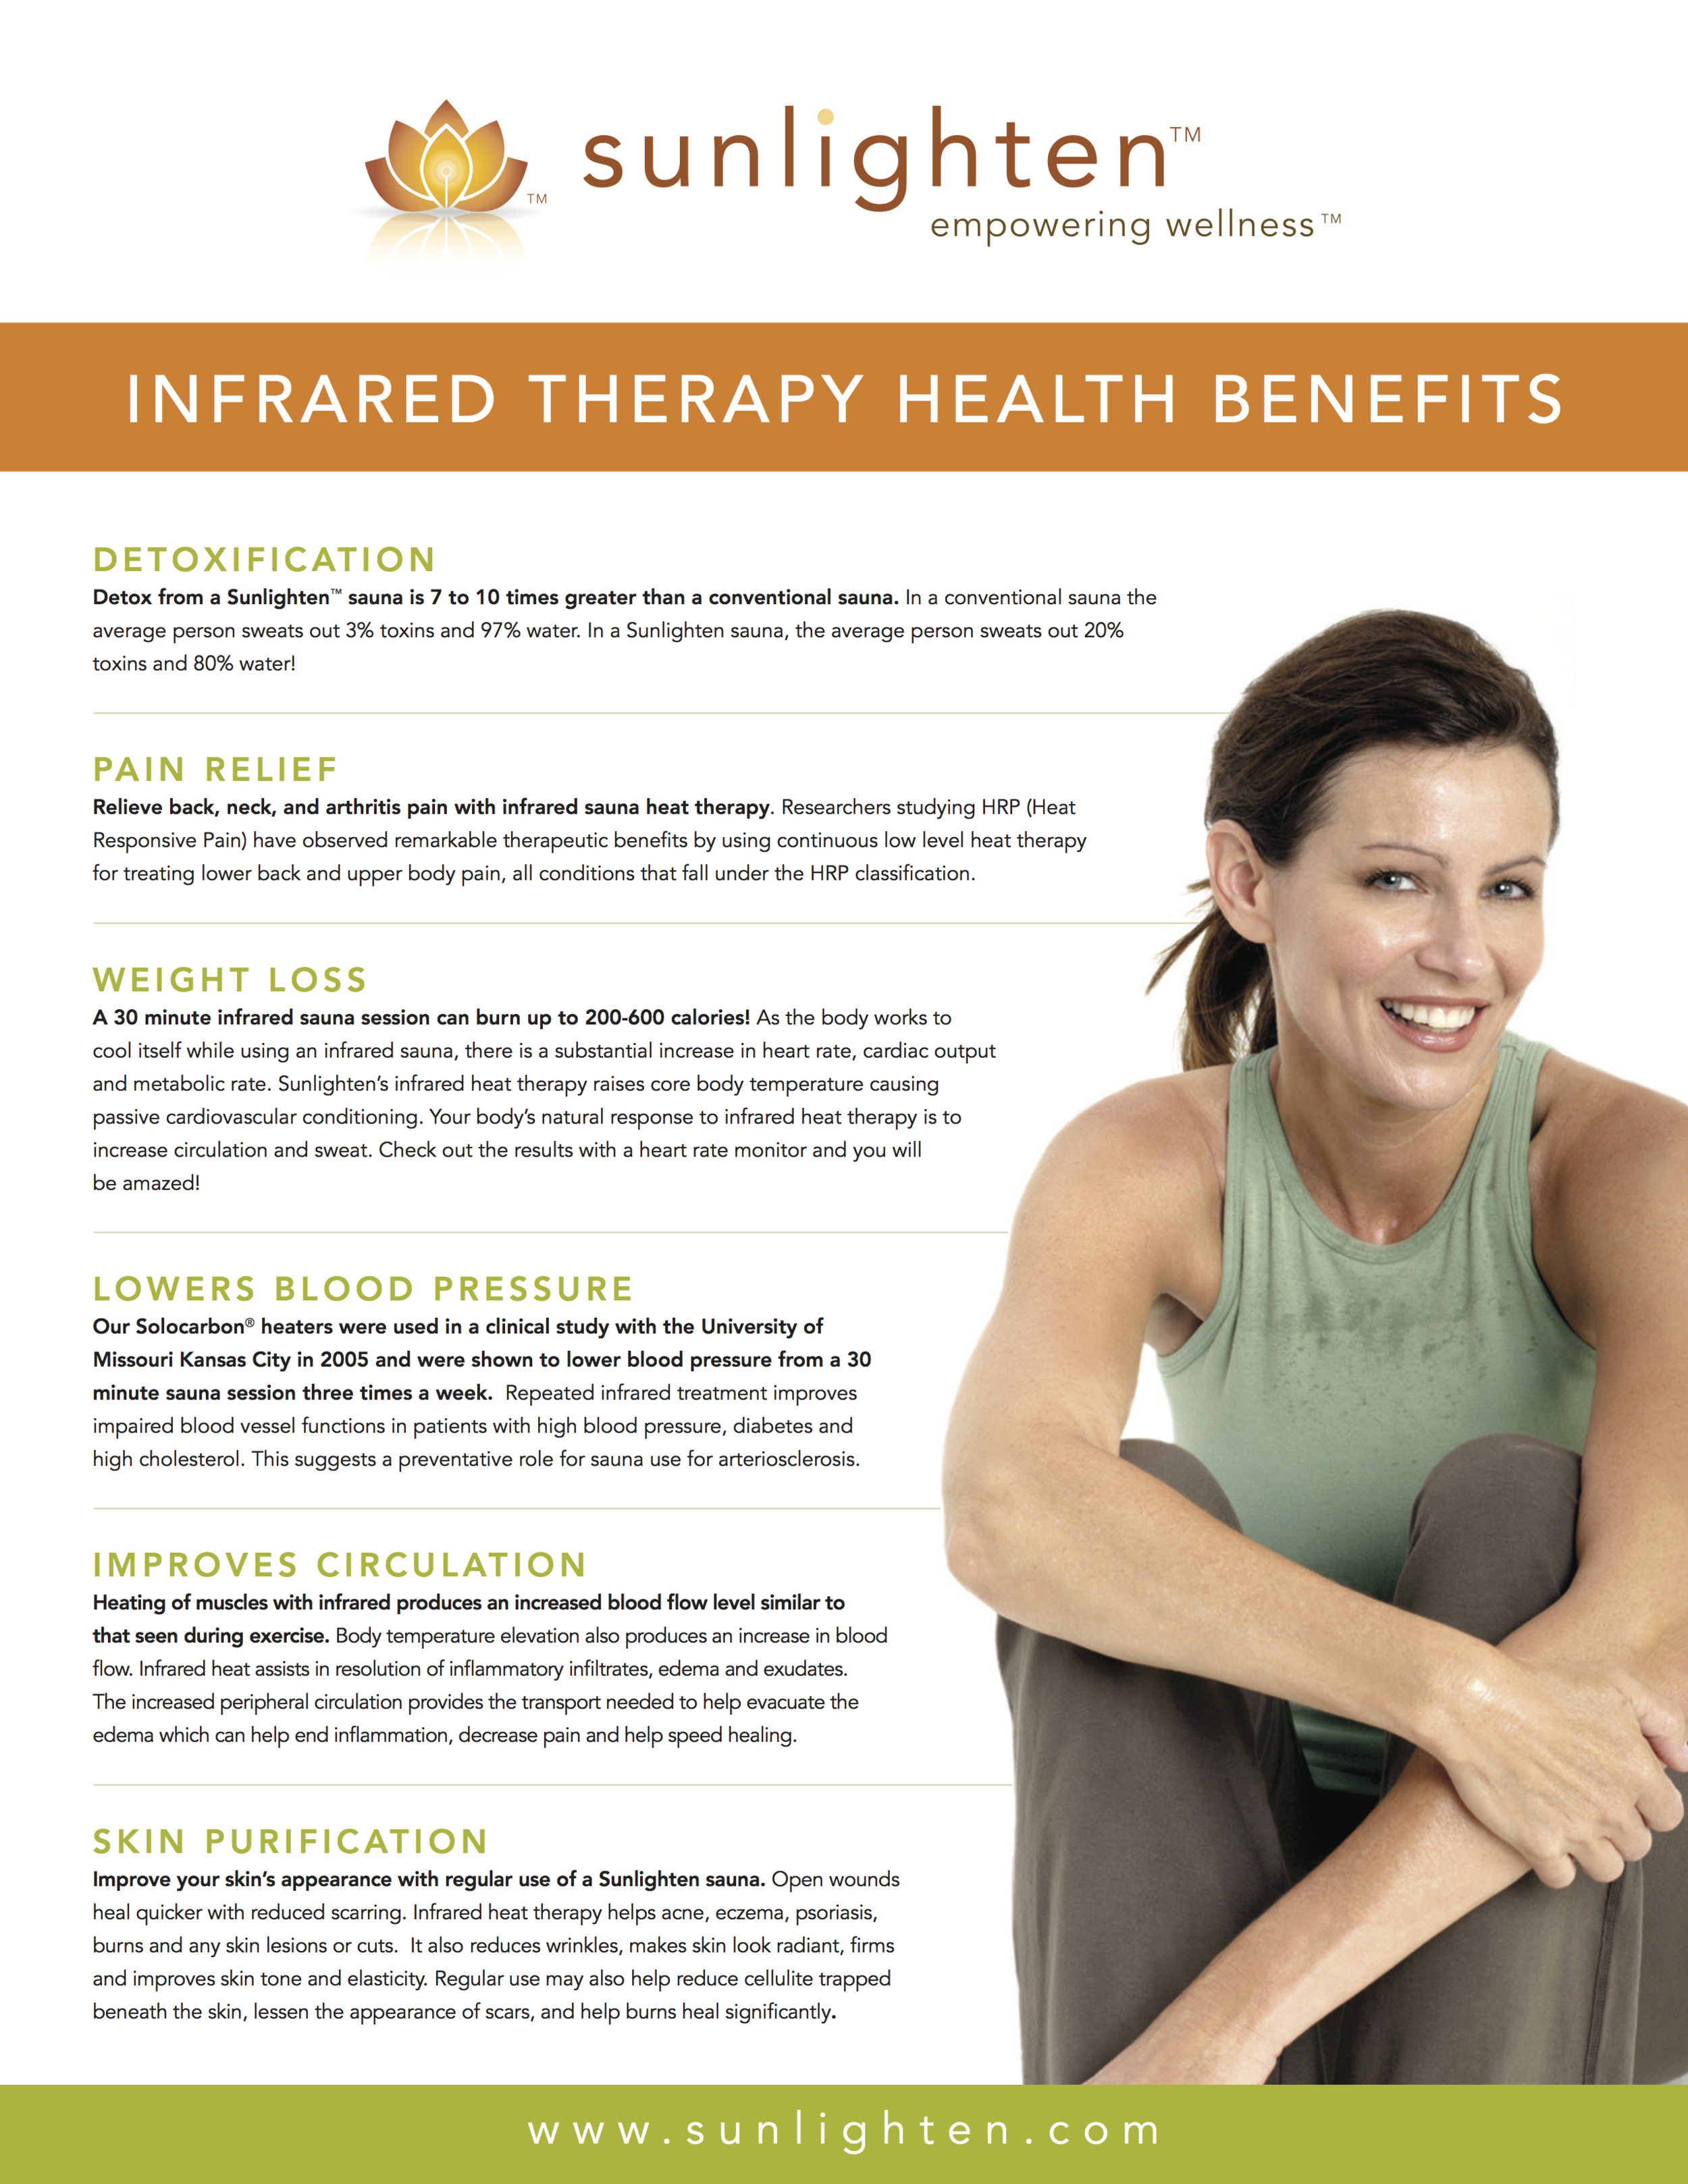 SUNLIGHTEN-Health-Benefits-Flyer.png